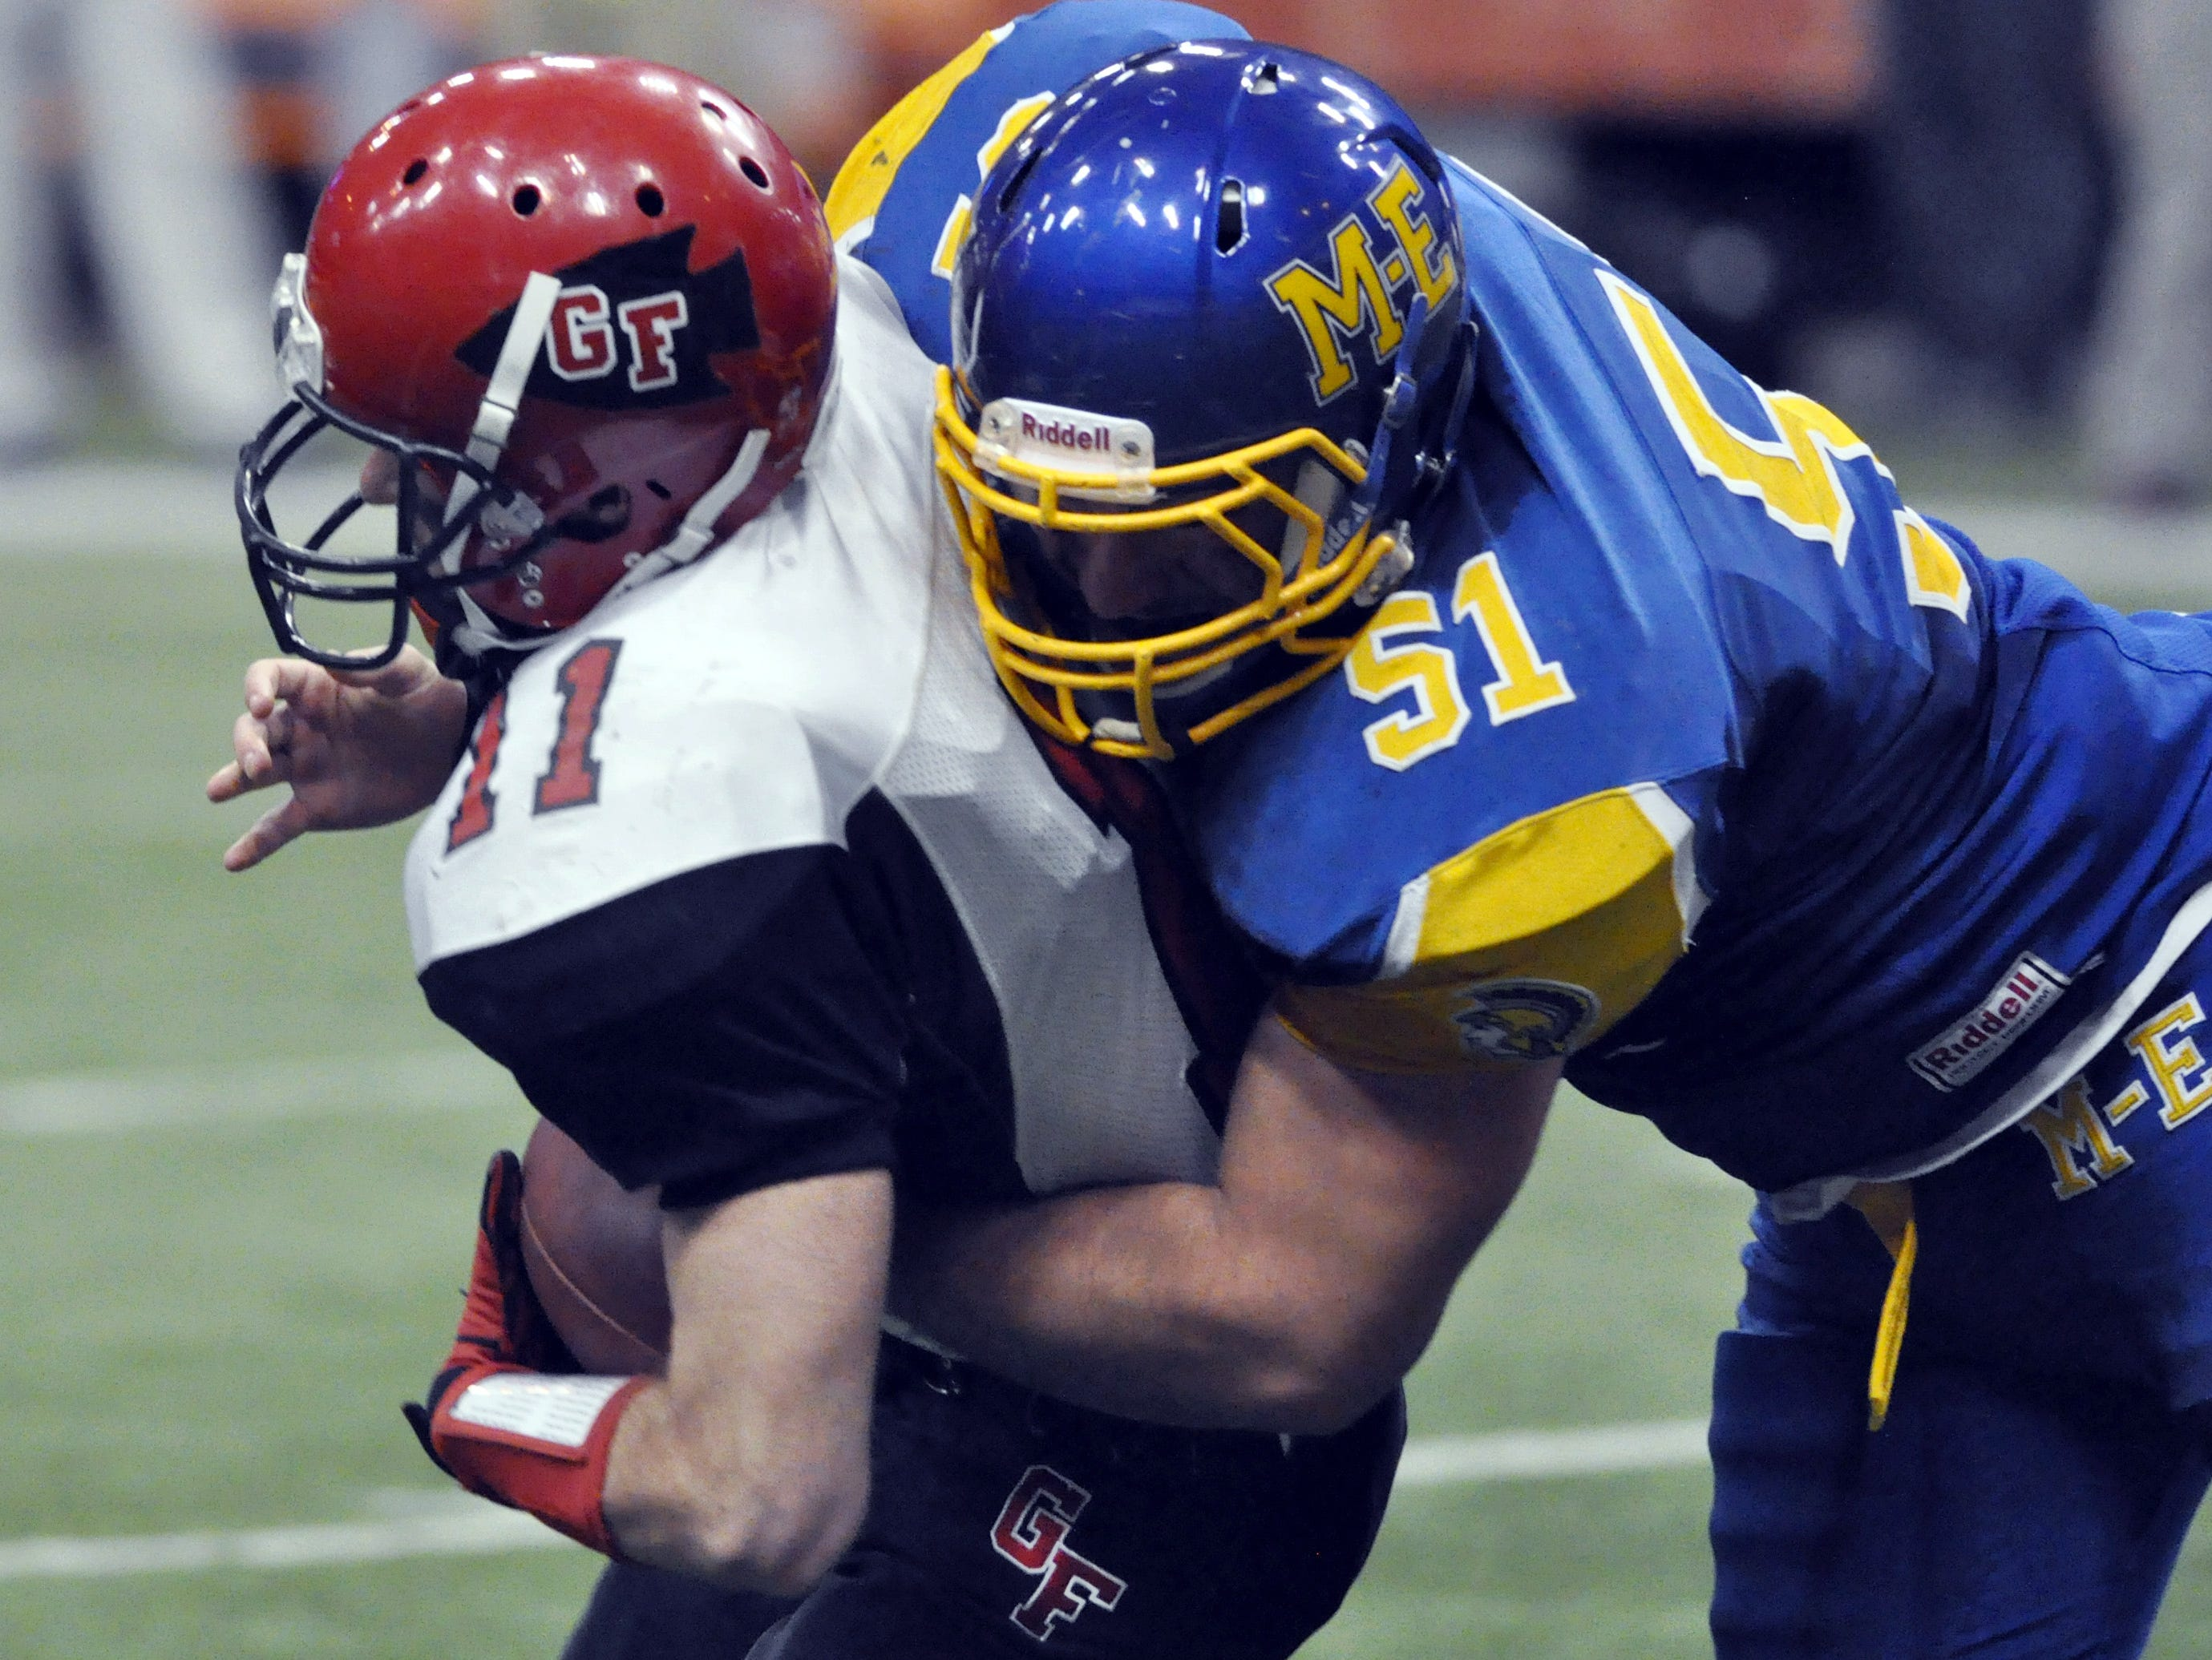 Maine-Endwell's Jake Haddock sacks Glens Falls quarterback Cam Girard during the third quarter of the Class B state championship game Nov. 24, 2012.